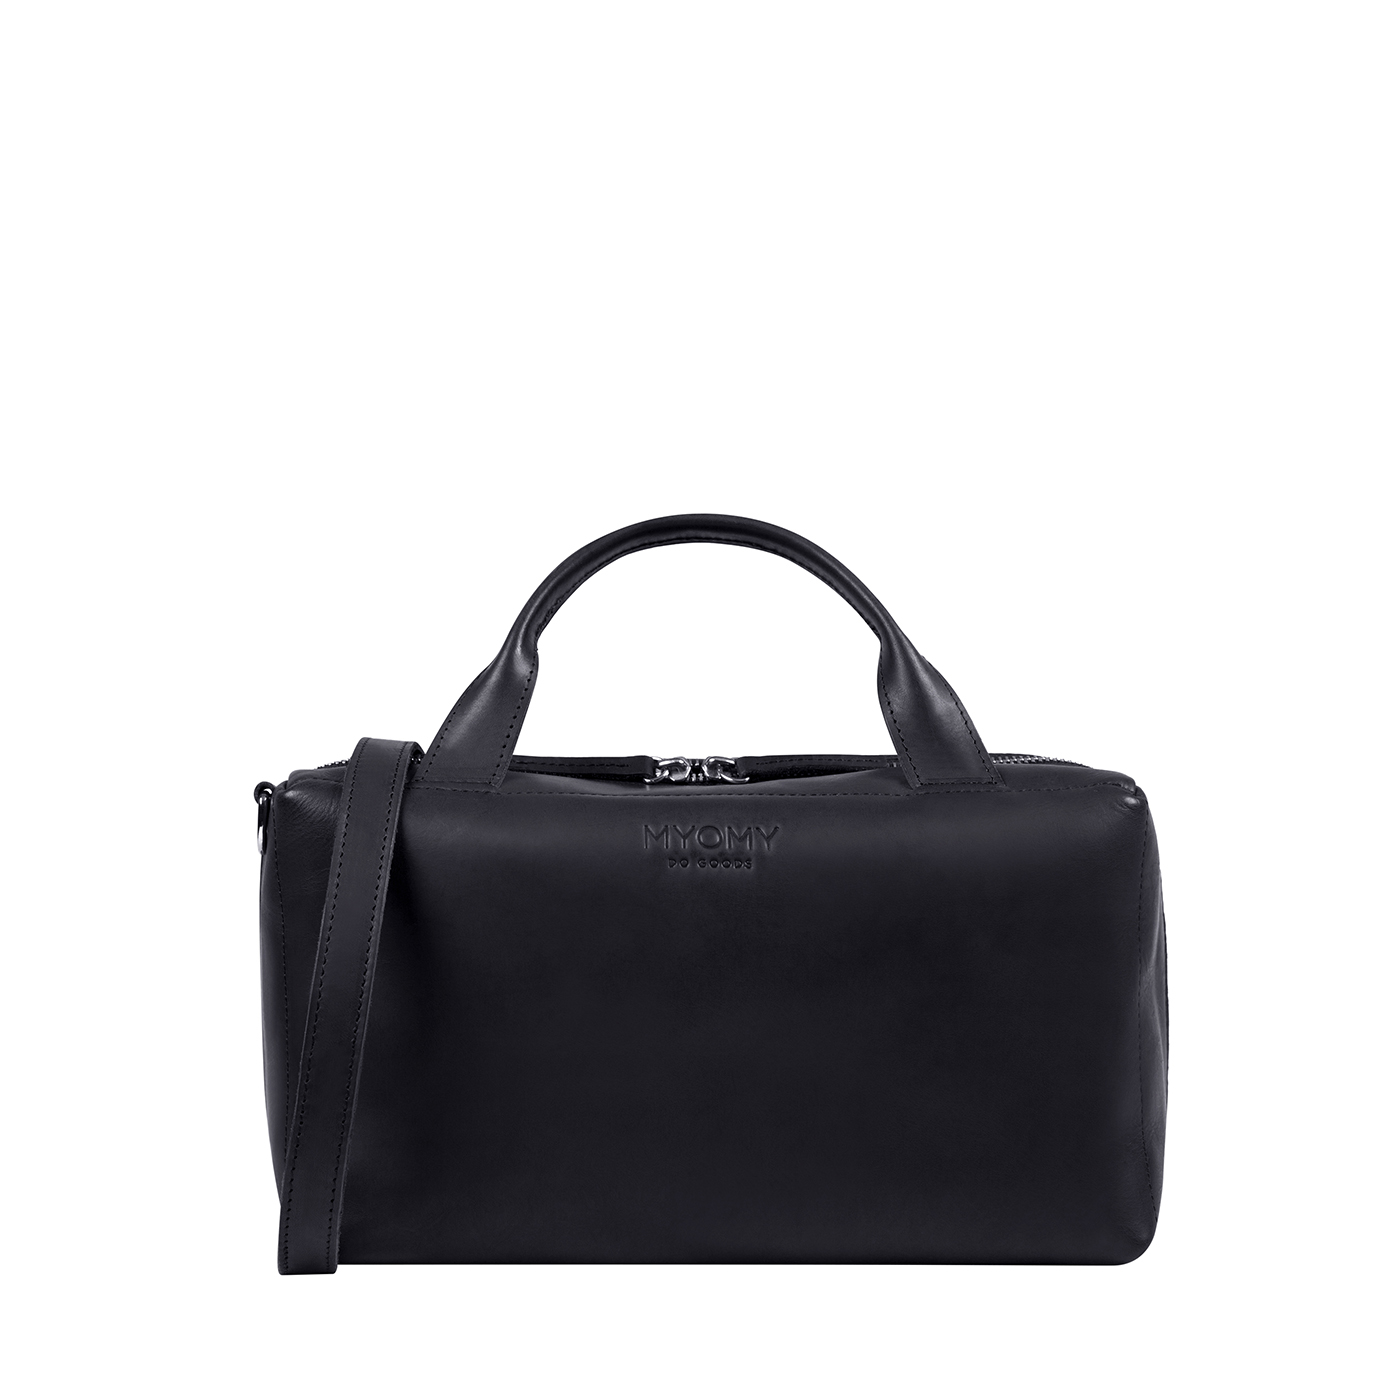 MY BOXY BAG Workbag – hunter black